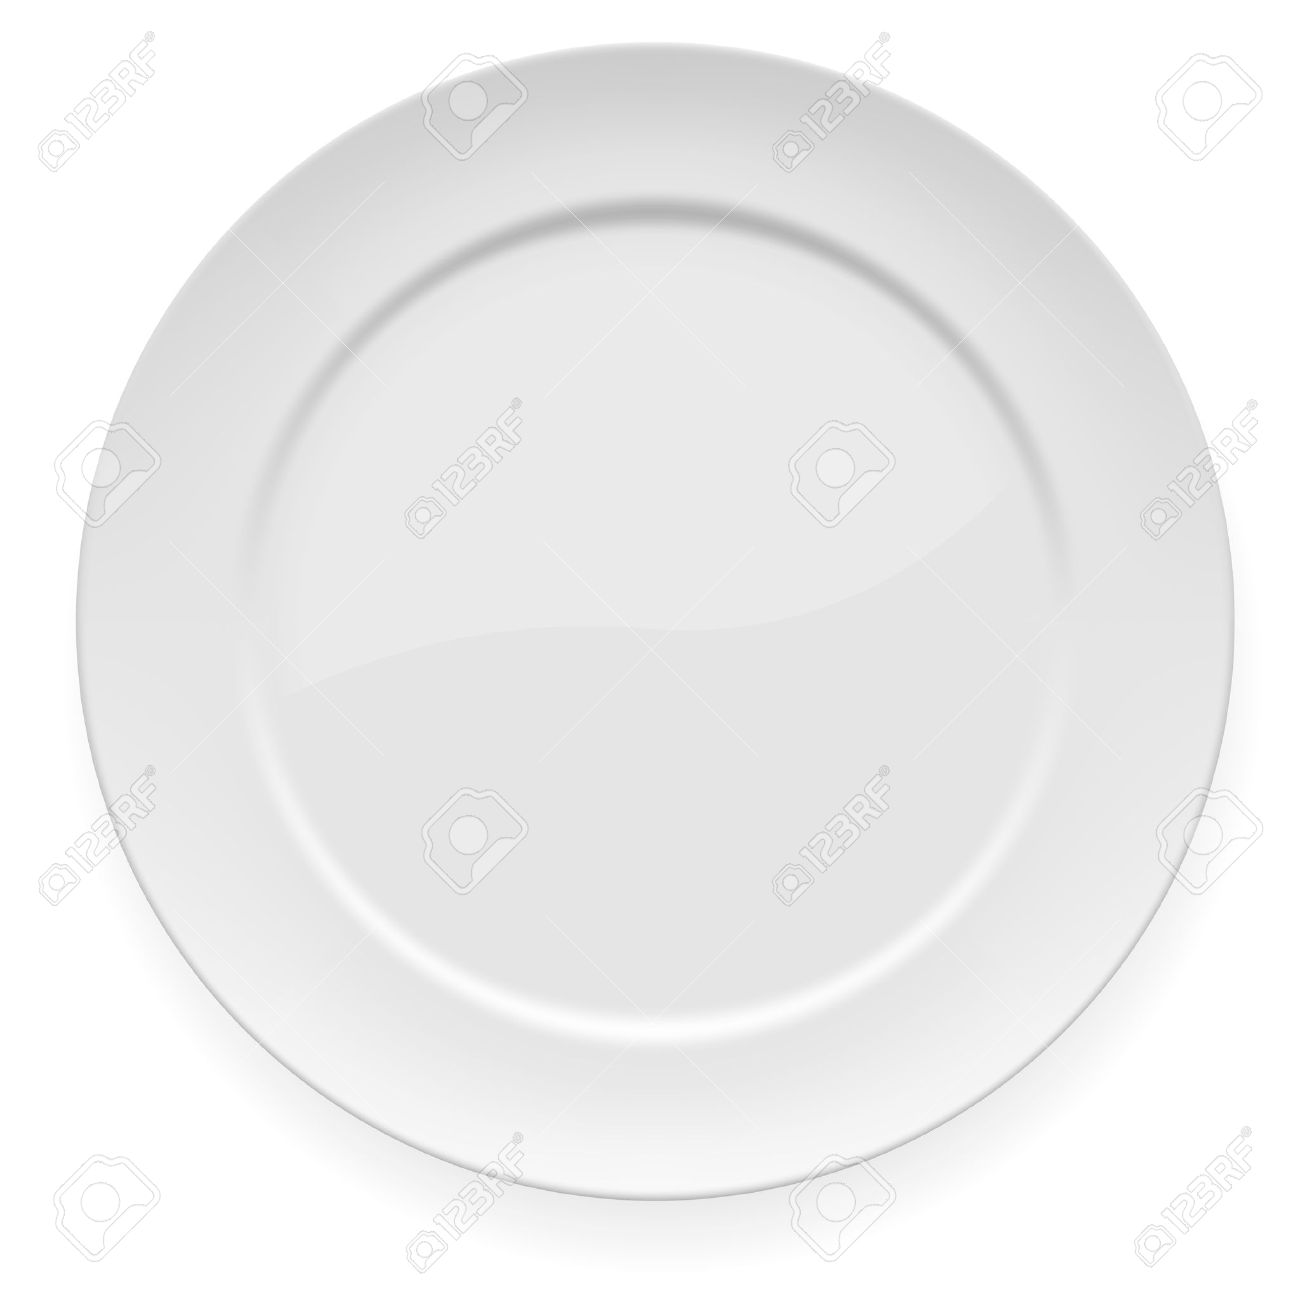 Dinner Plate Template. food teaching resources and printables .  sc 1 st  Namanasa.com & Unique Dinner Plate Template Mold - Resume Ideas - namanasa.com